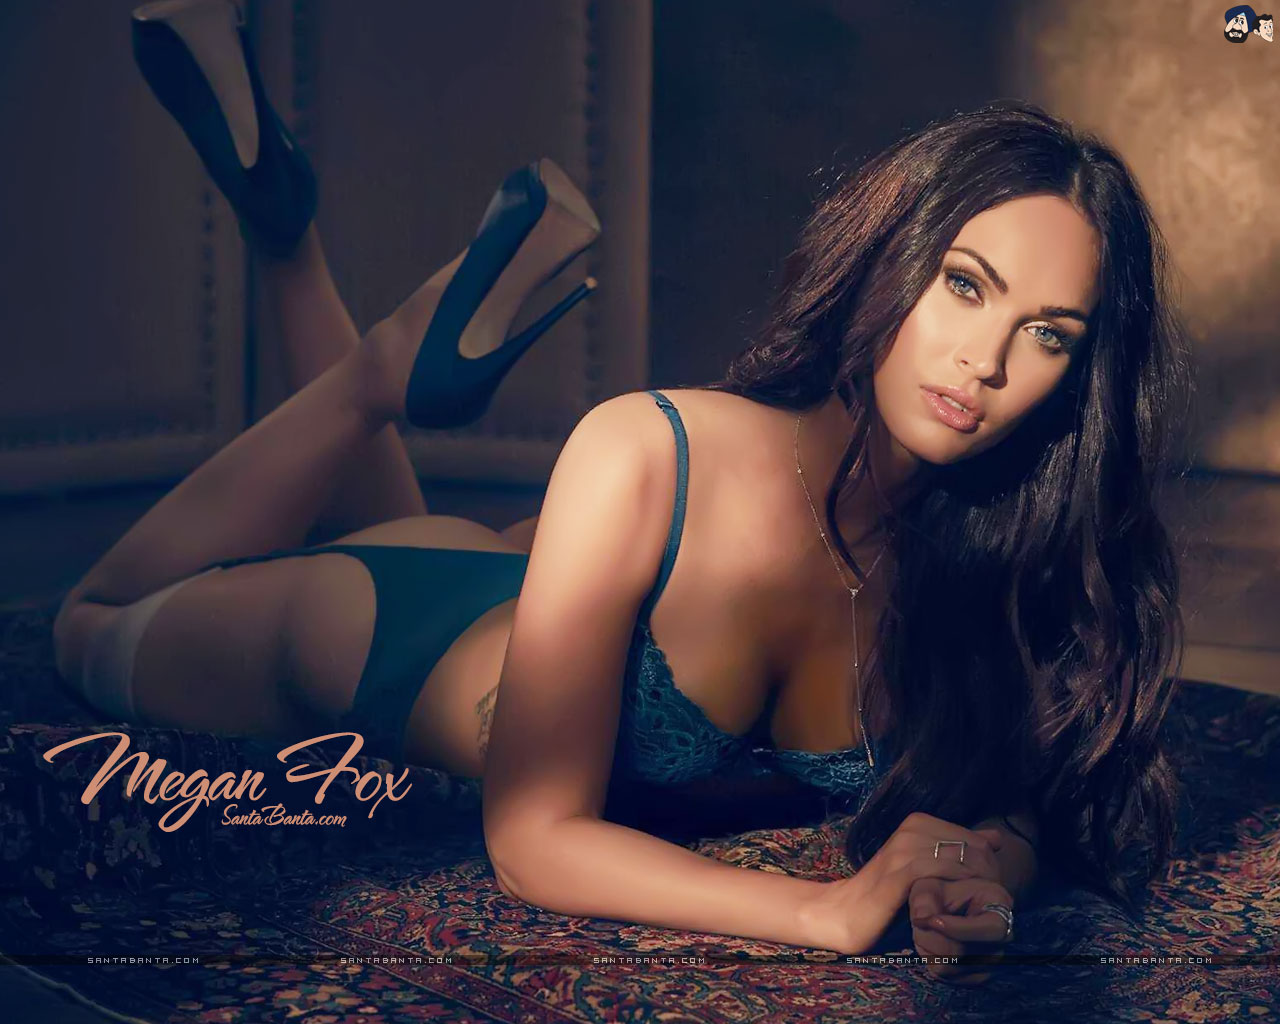 megan fox hd wallpapers | most beautiful places in the world